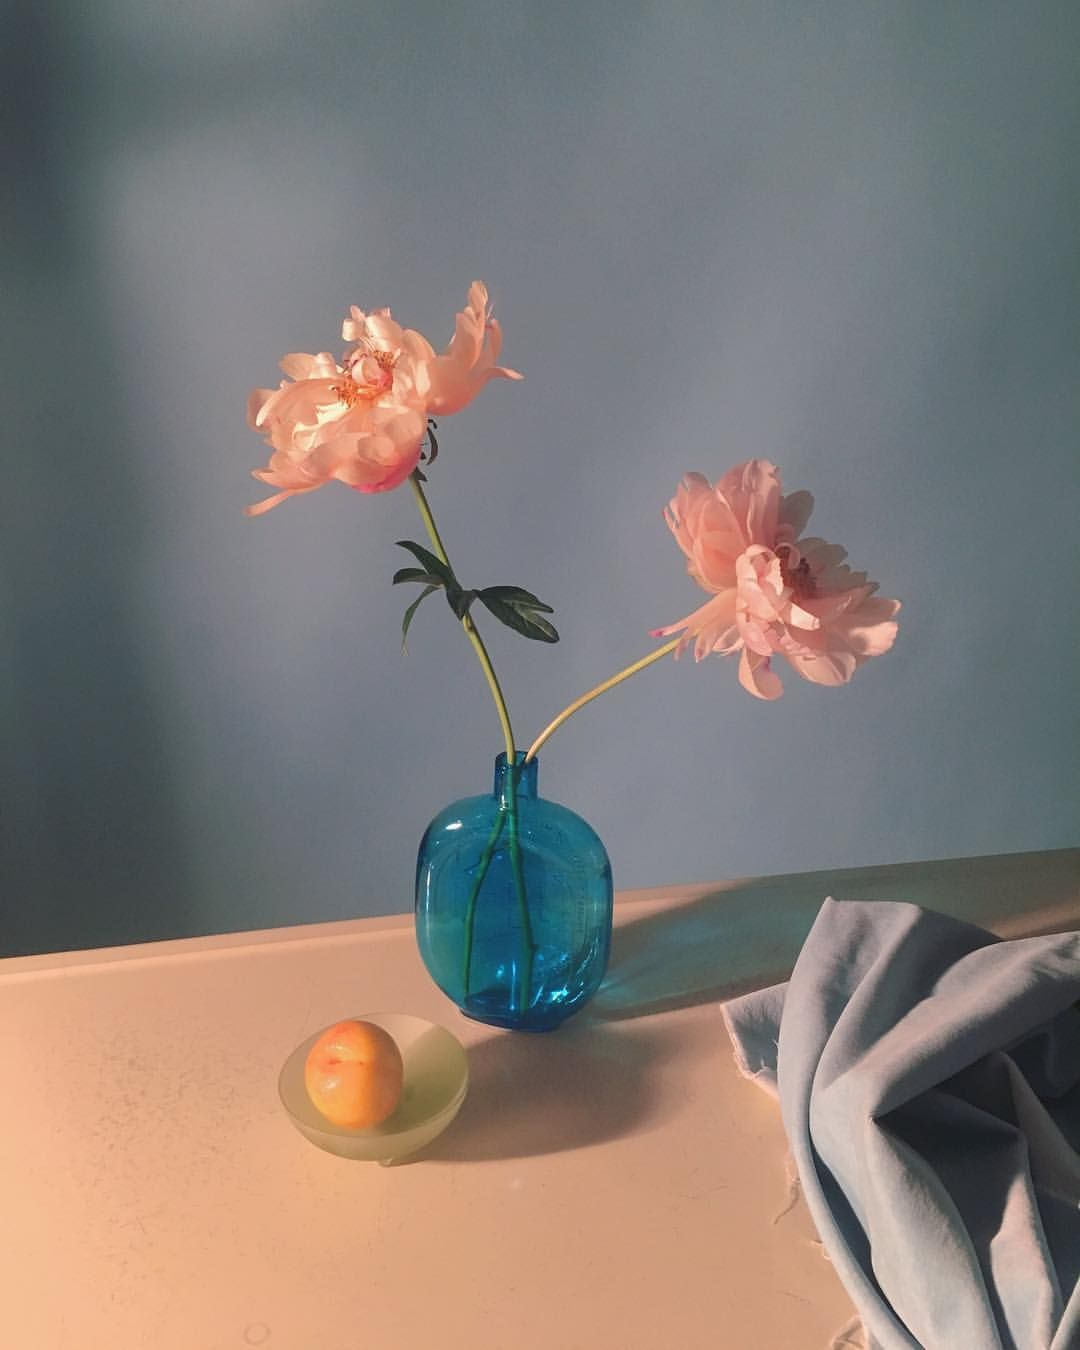 Instagram의 A P Bio님 That Little Thing Is A Lemon Plum Lemon Plum Lemon Plum Lemon Plum Still Photography Still Life Photography Flower Vases